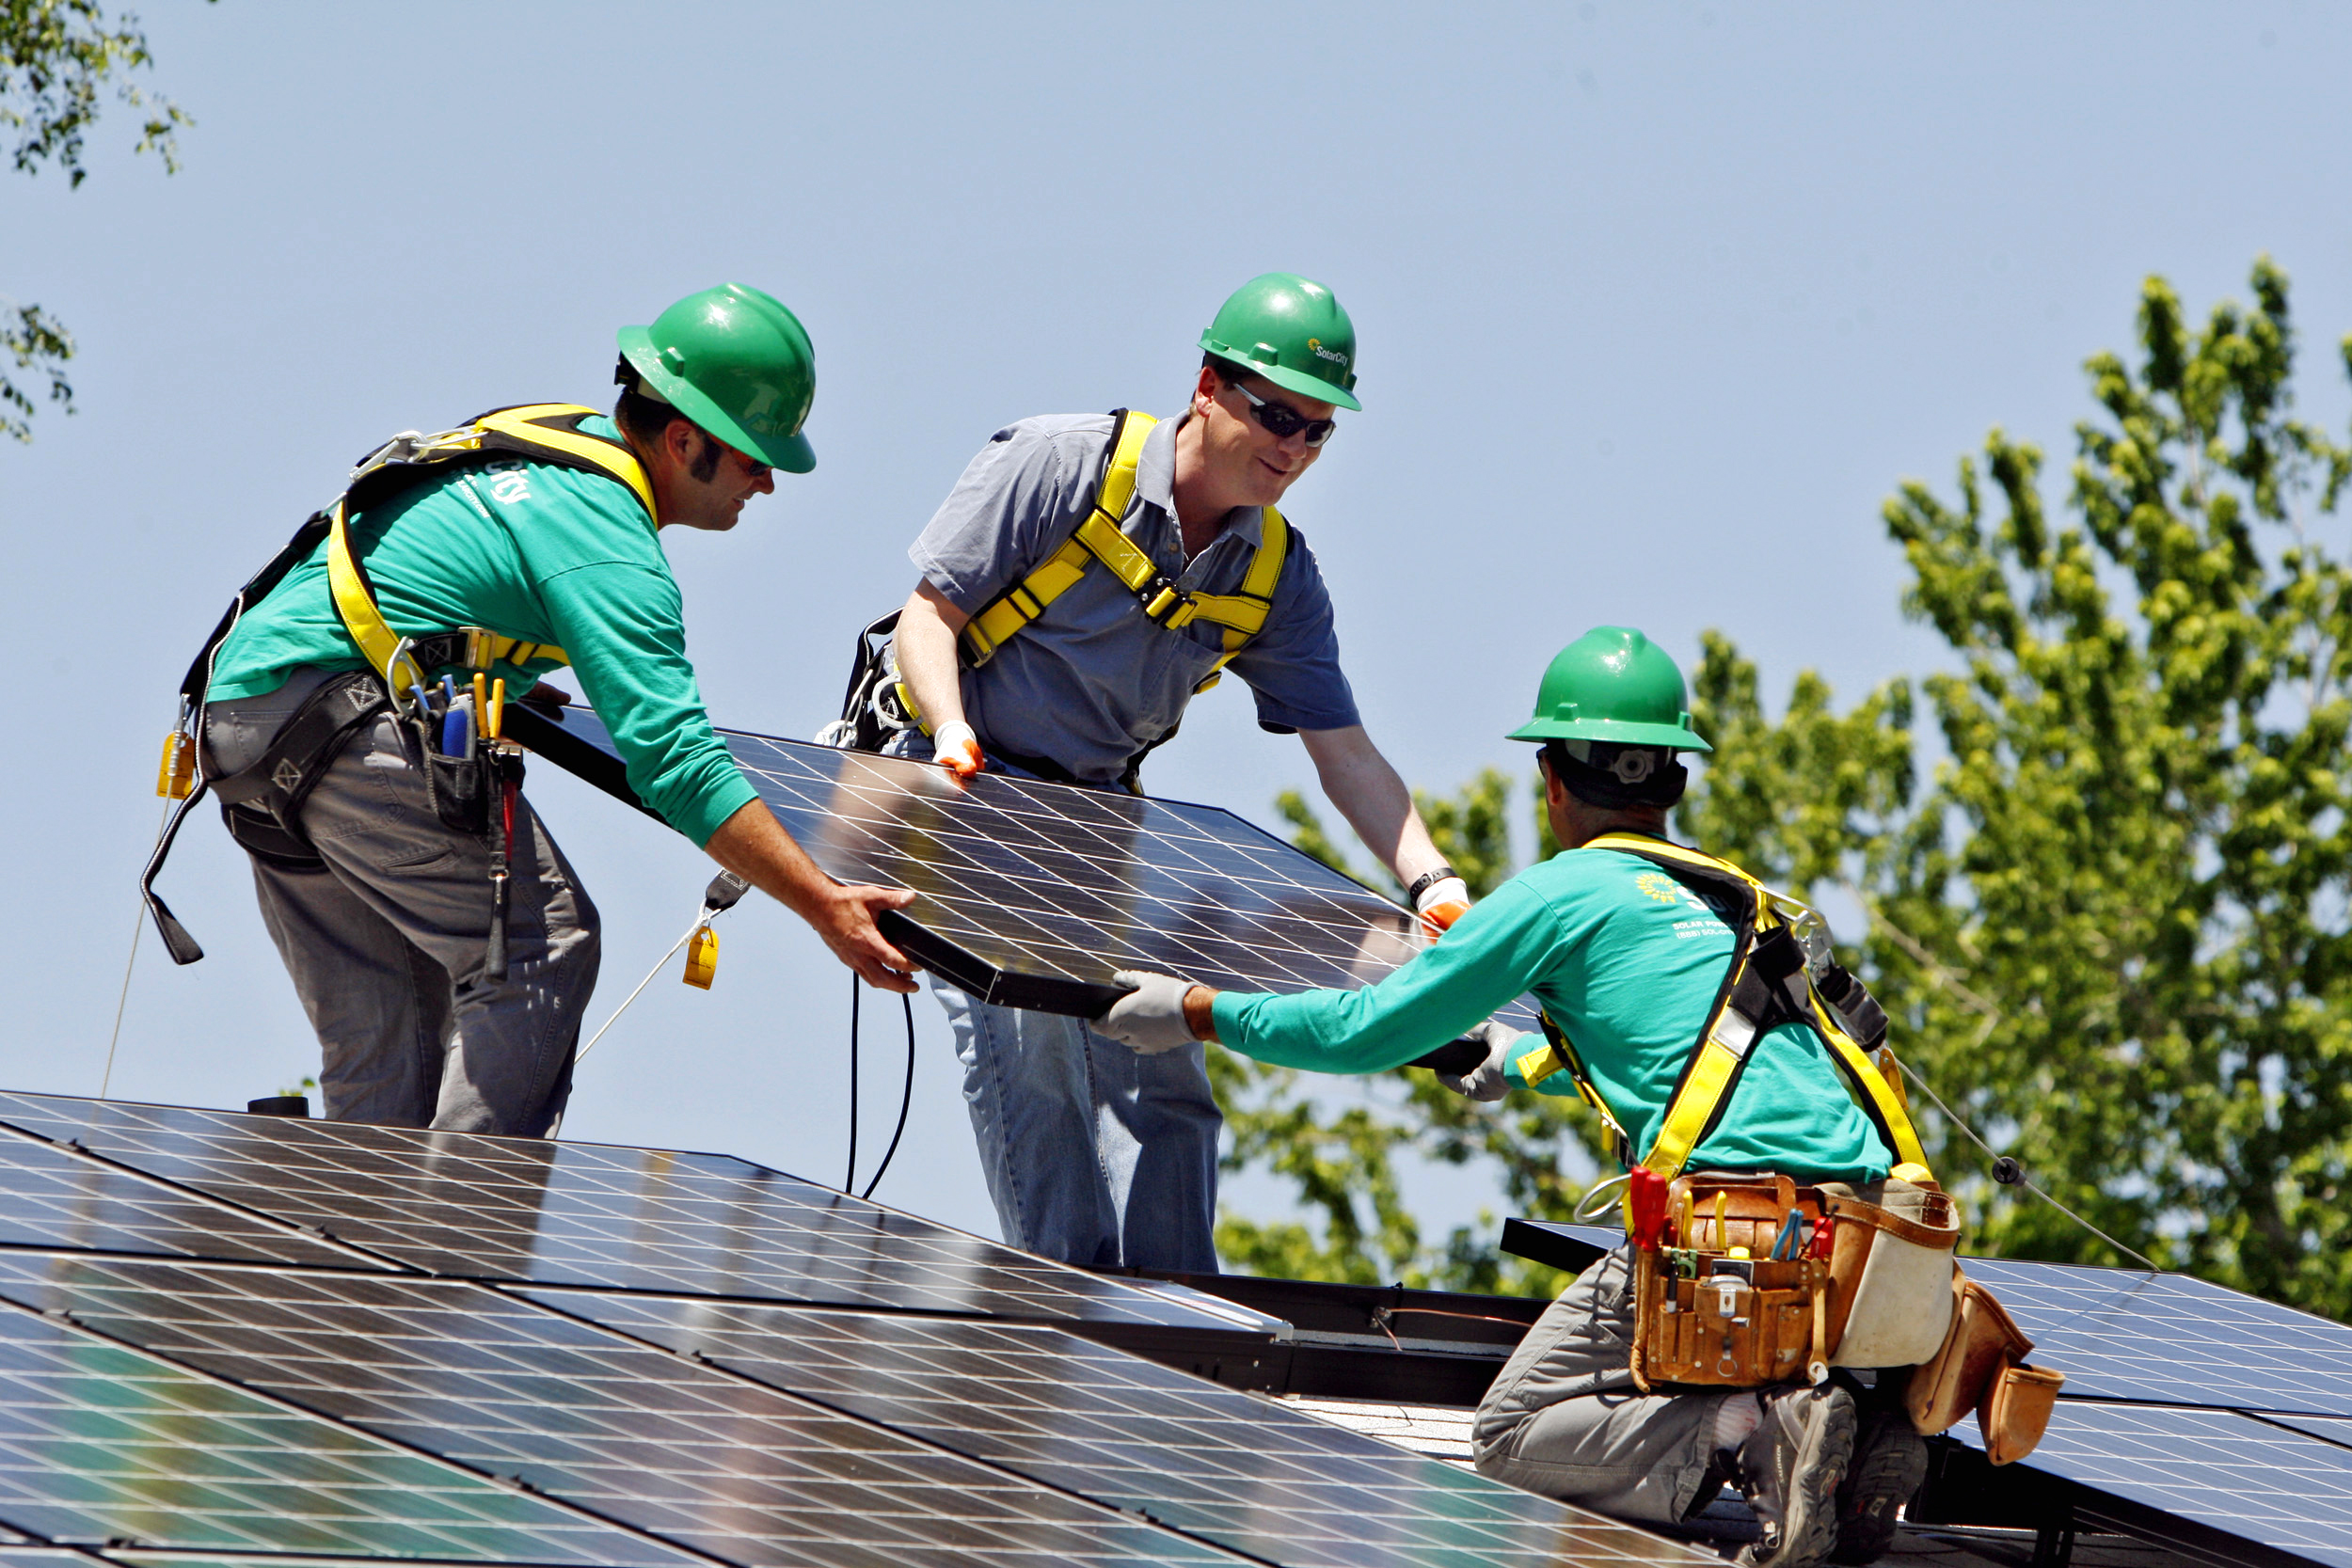 FILE - In this June 18, 2010, file photo, U.S. Senator Michael Bennet, D-Colo., center, helps as SolarCity employees Jarret Esposito, left, and Jake Torwatzky, install a solar panel on a home in south Denver. SolarCity, one of the nation's largest installers of rooftop solar systems, on Tuesday, June 17, 2014 announced it is buying Silveo, a solar panel manufacturer. (AP Photo/Ed Andrieski, File)